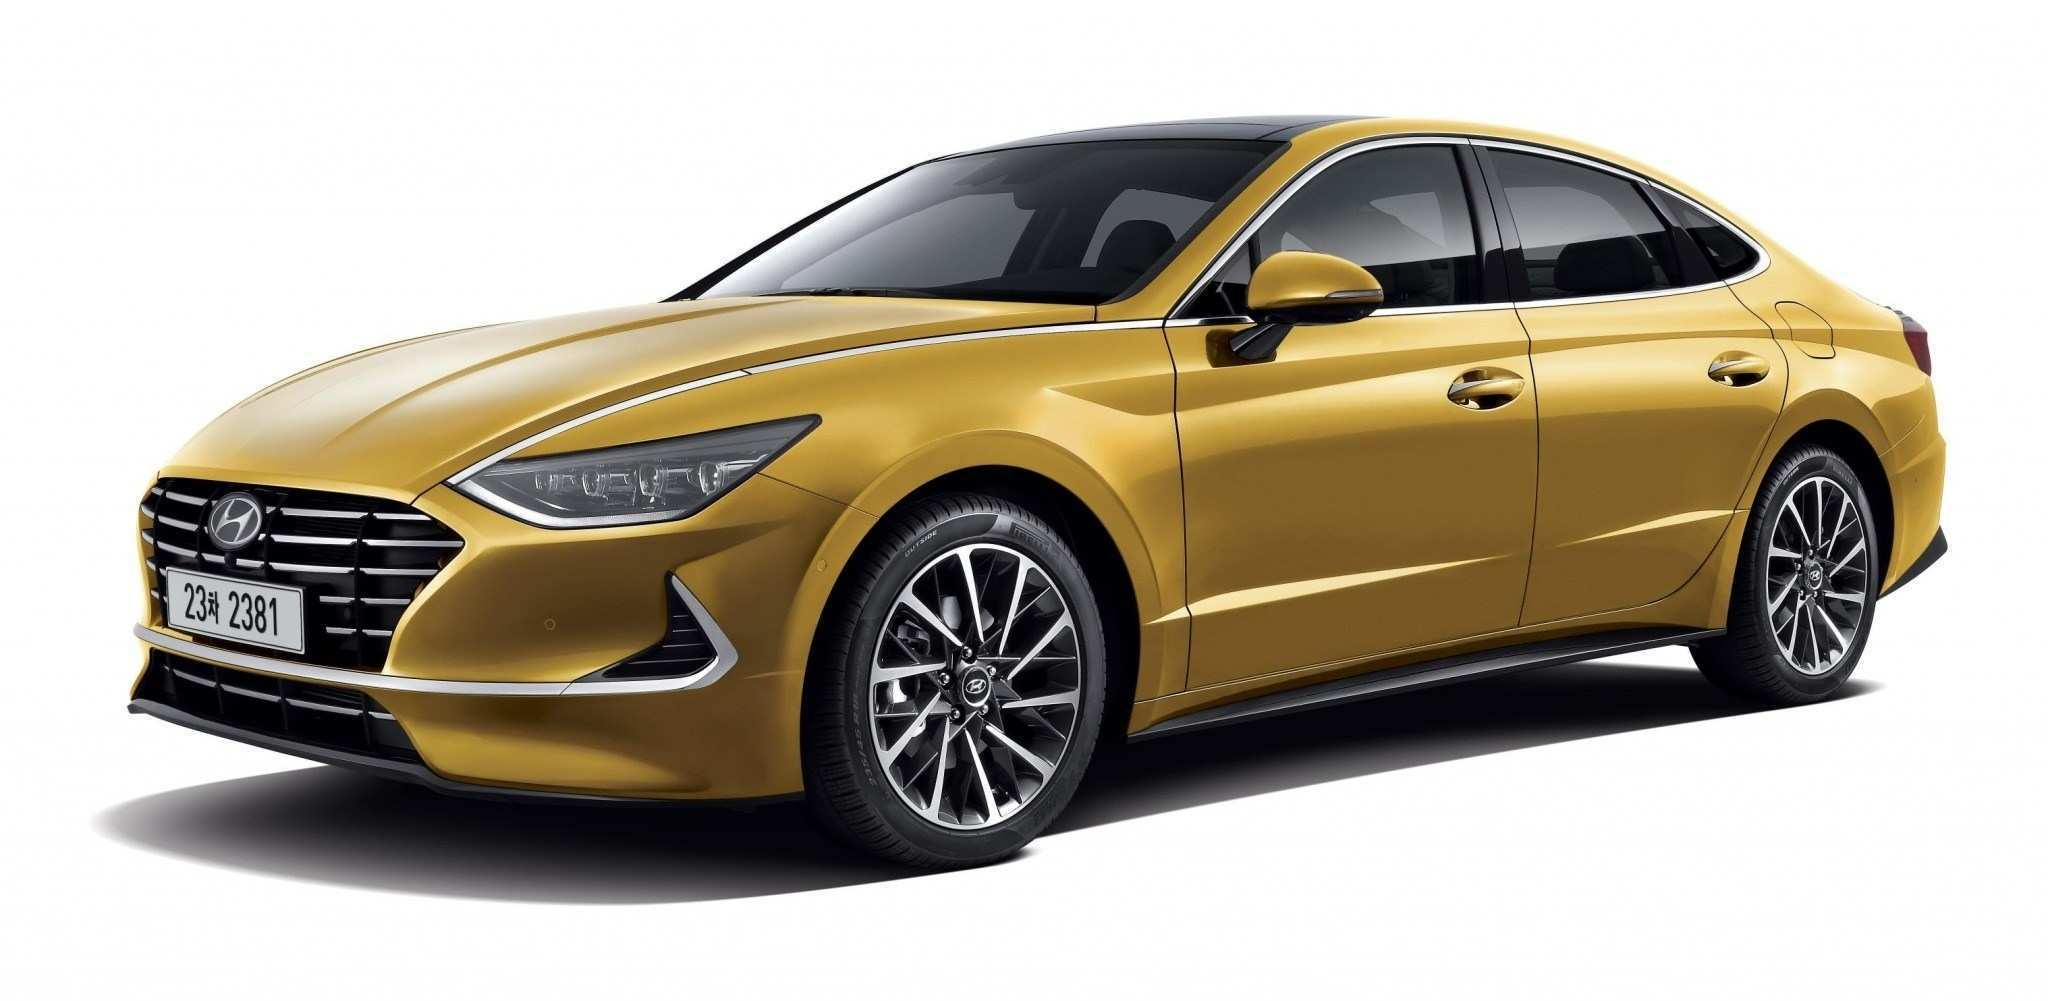 67 A 2019 Hyundai Sonata Review Price